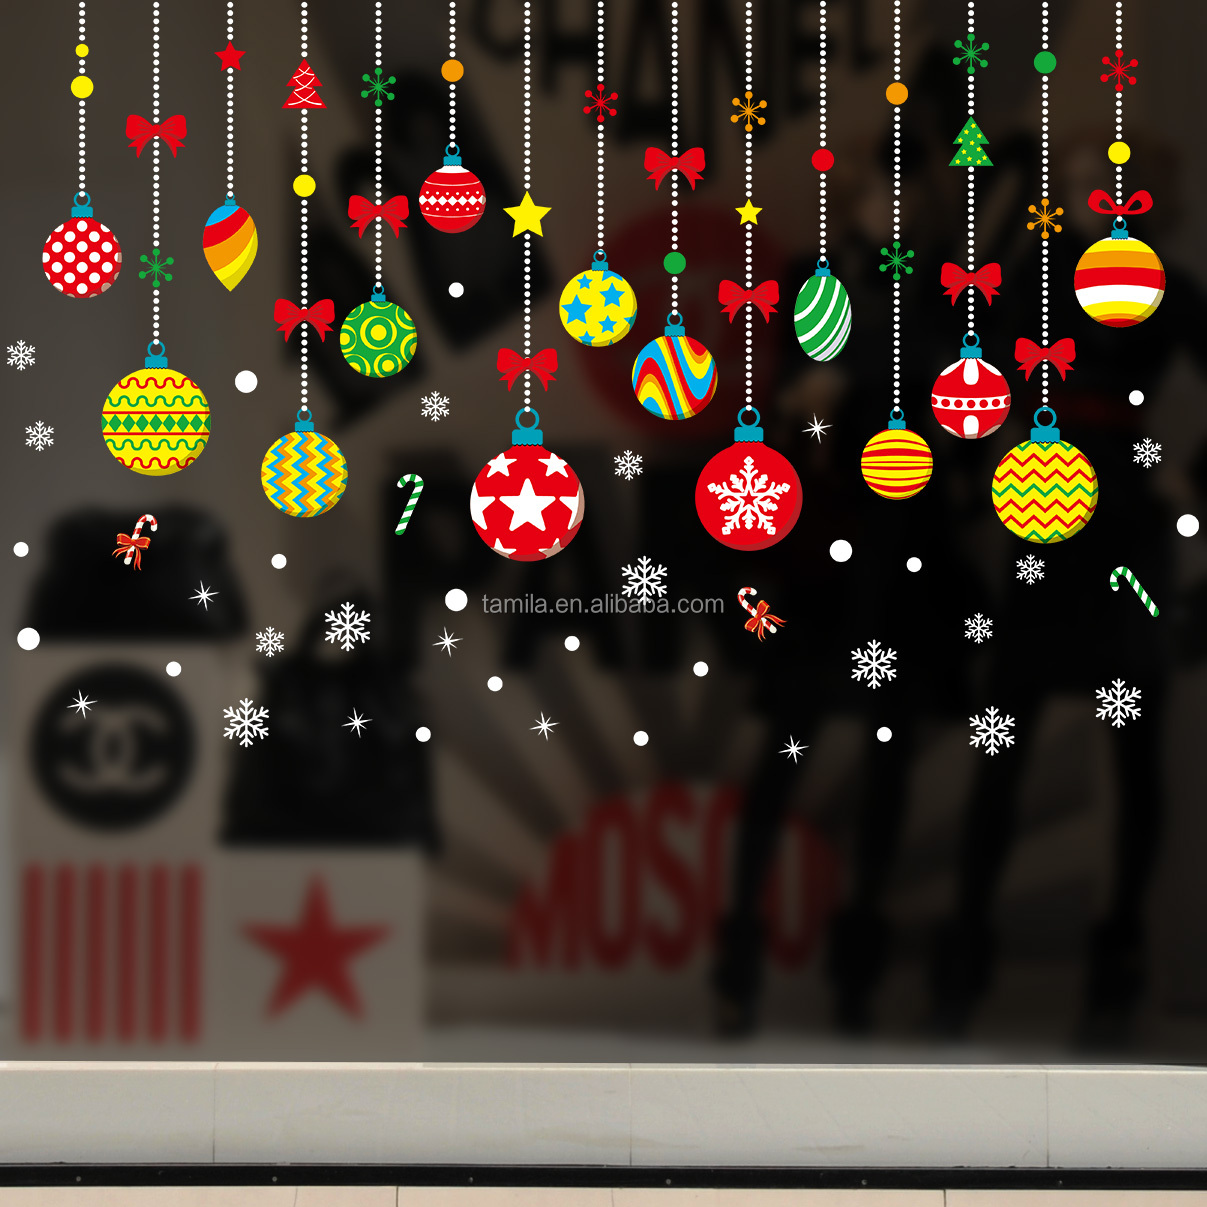 Christmas Tree Gift Wall Stickers Living Room Bedroom Store Window Wall Decals Christmas New Year Sticker